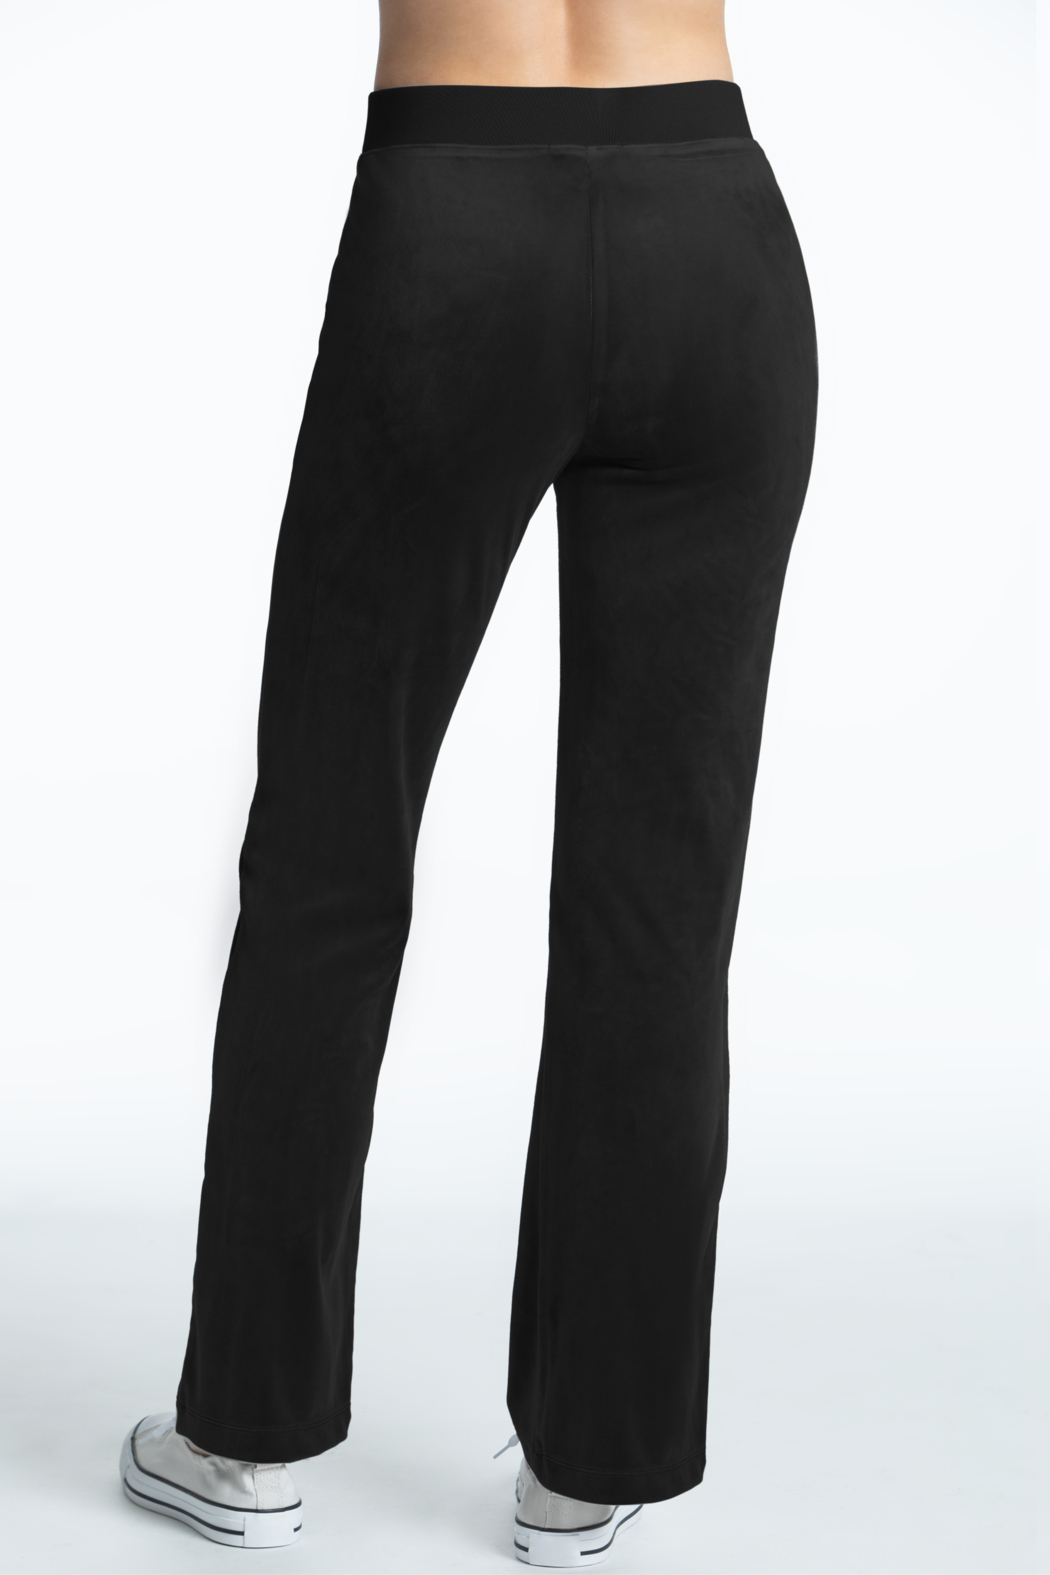 Juicy Couture Juicy Velour Pant - Side Cropped Image